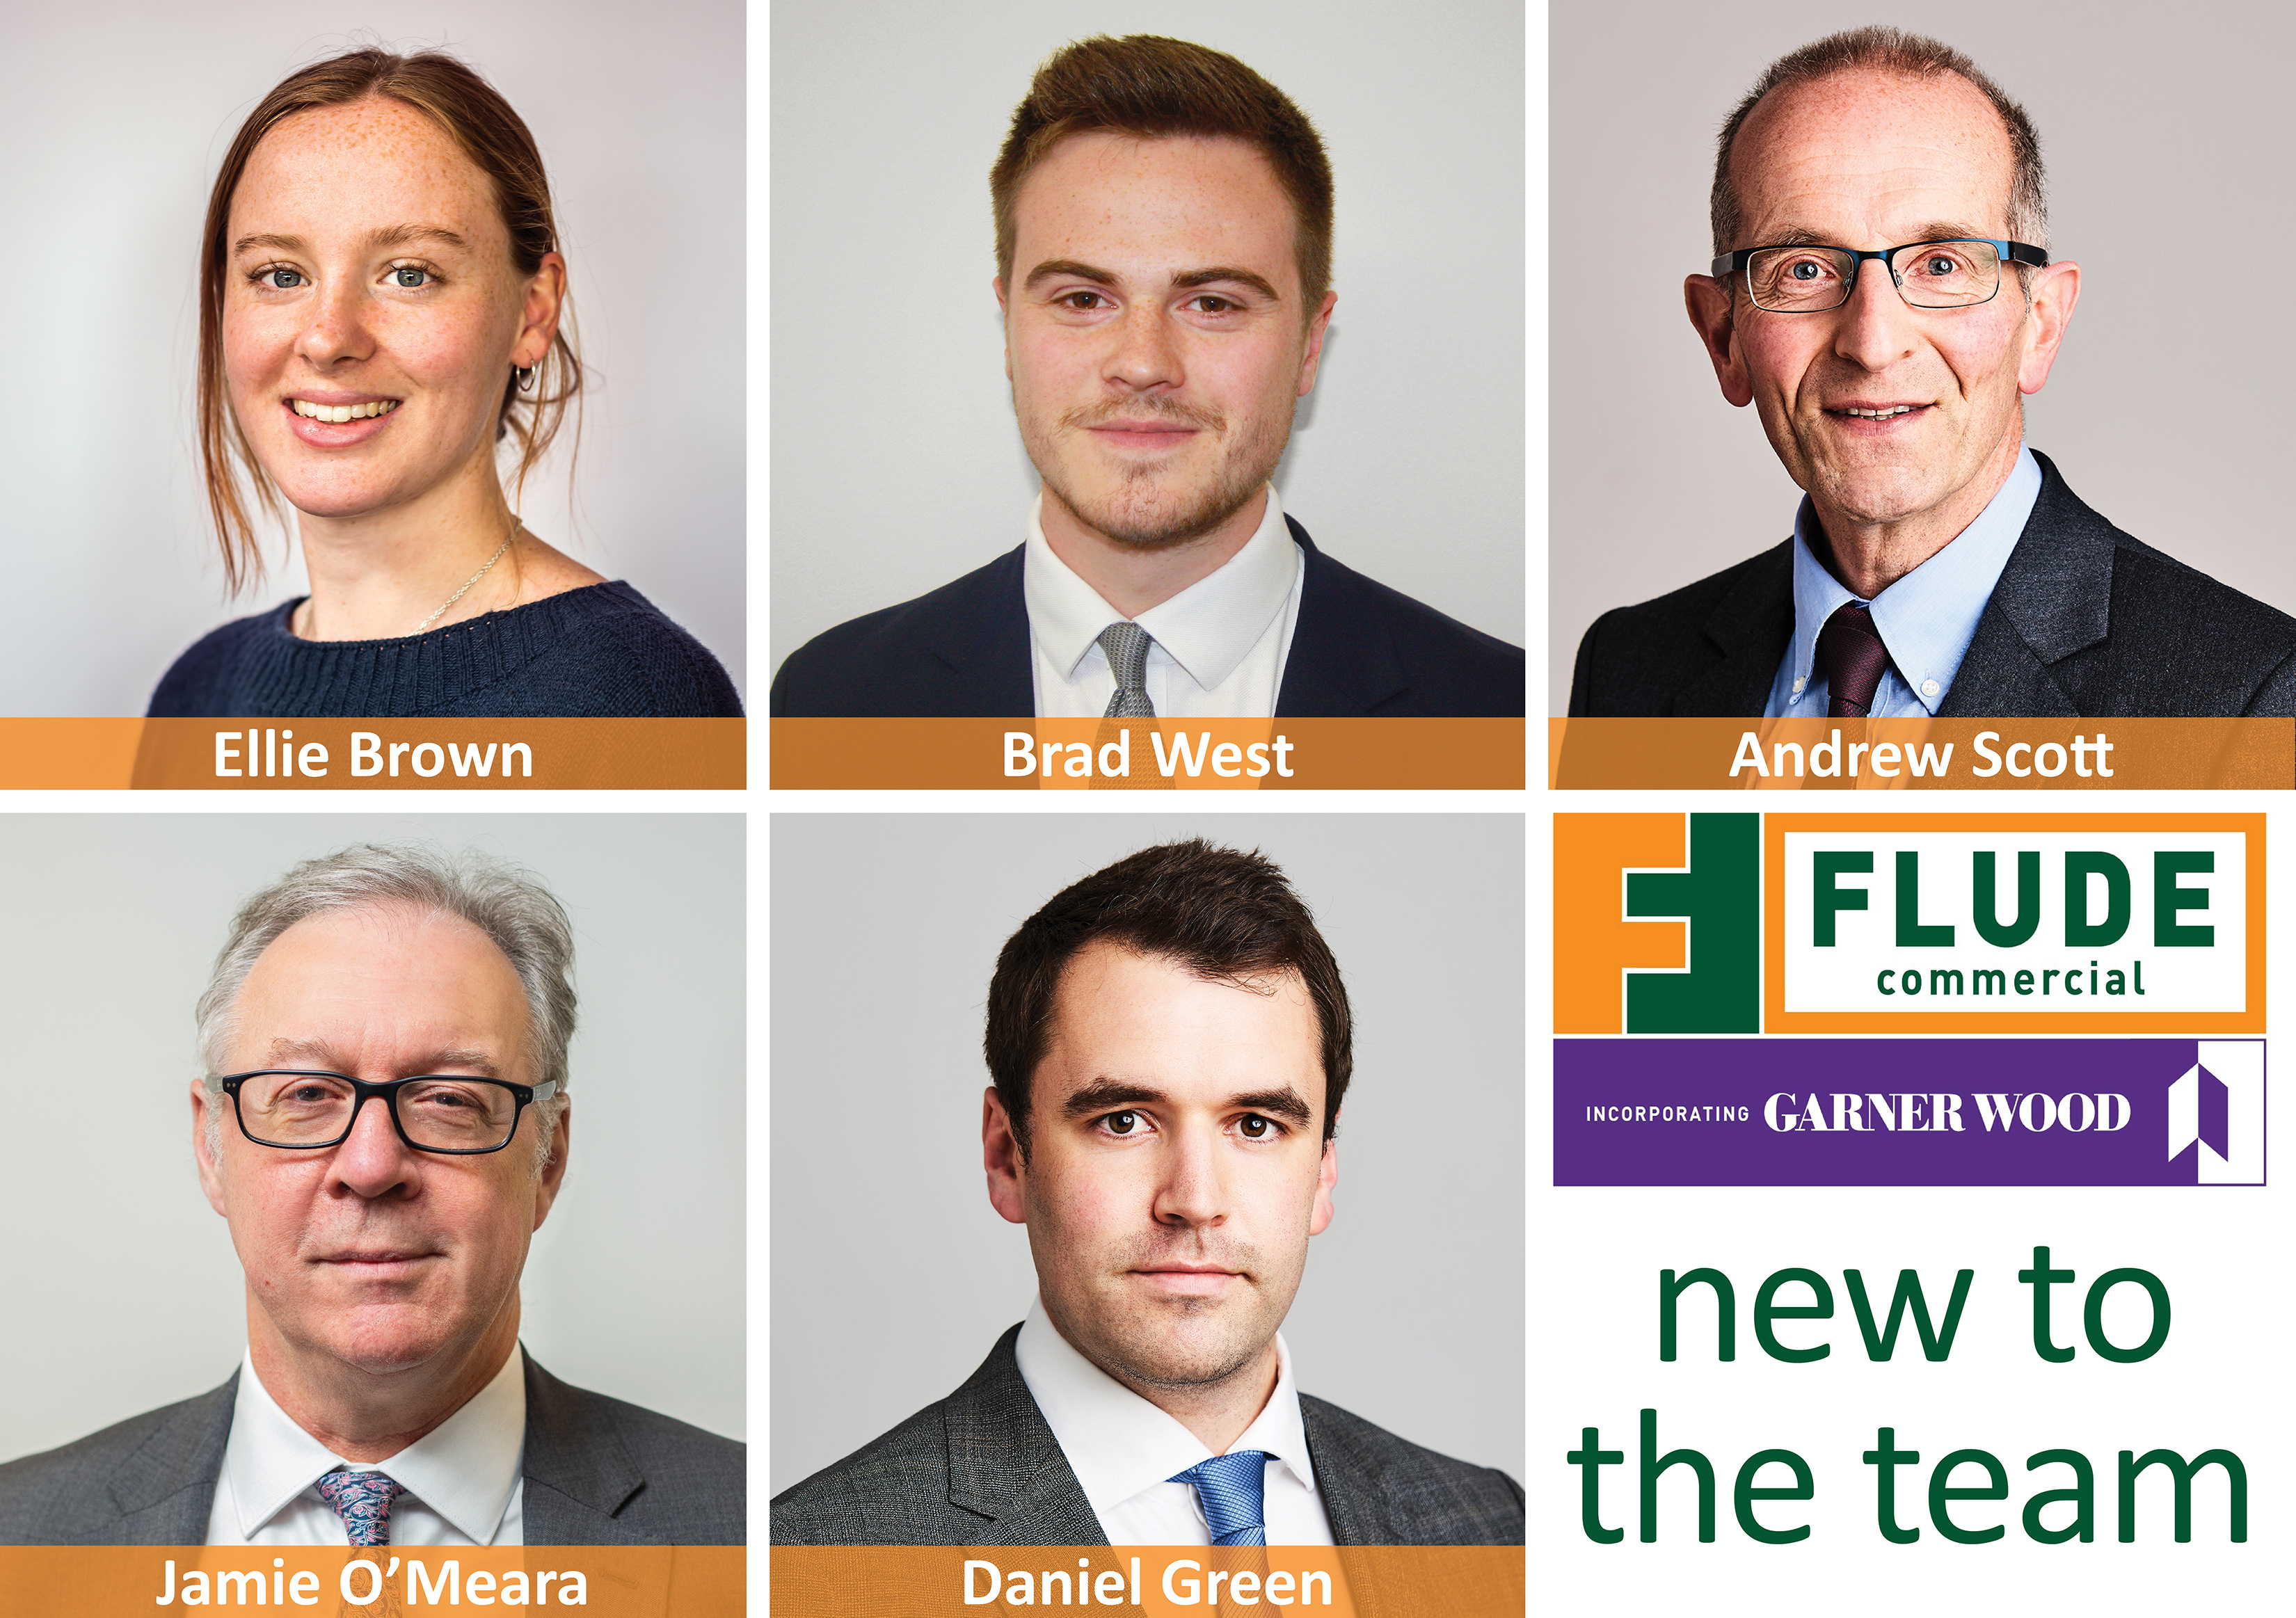 Further Growth for Flude Commercial incorporating Garner Wood